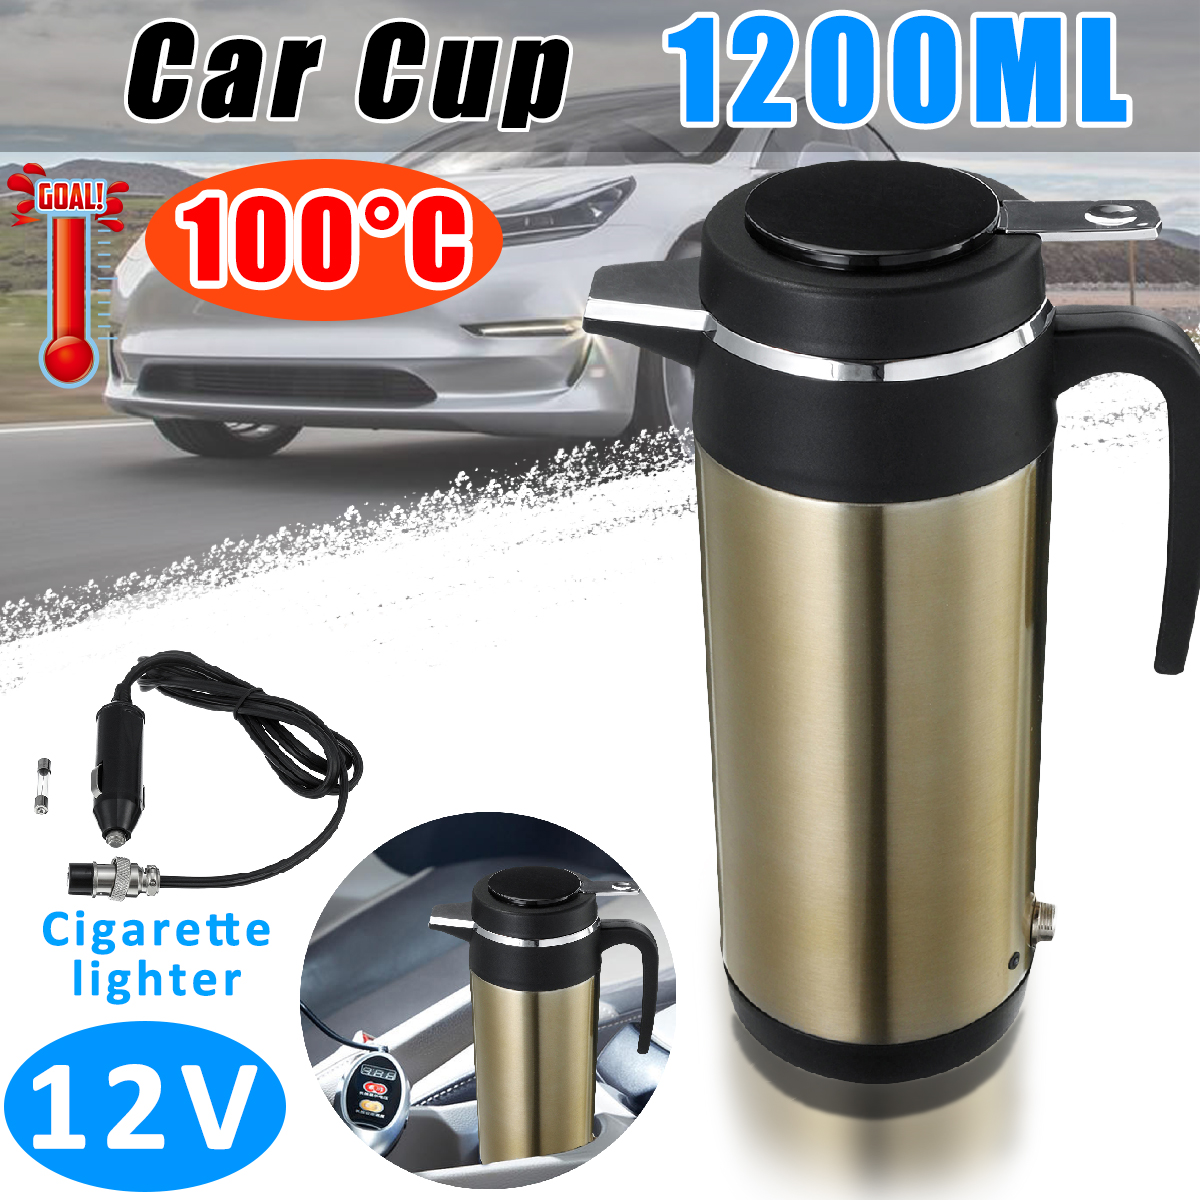 1200ml 12V Car Truck Electric Heating Cup Thermostatic Kettle Stainless Steel Auto Travel Coffee Tea Boiling Mug Vacuum Flask